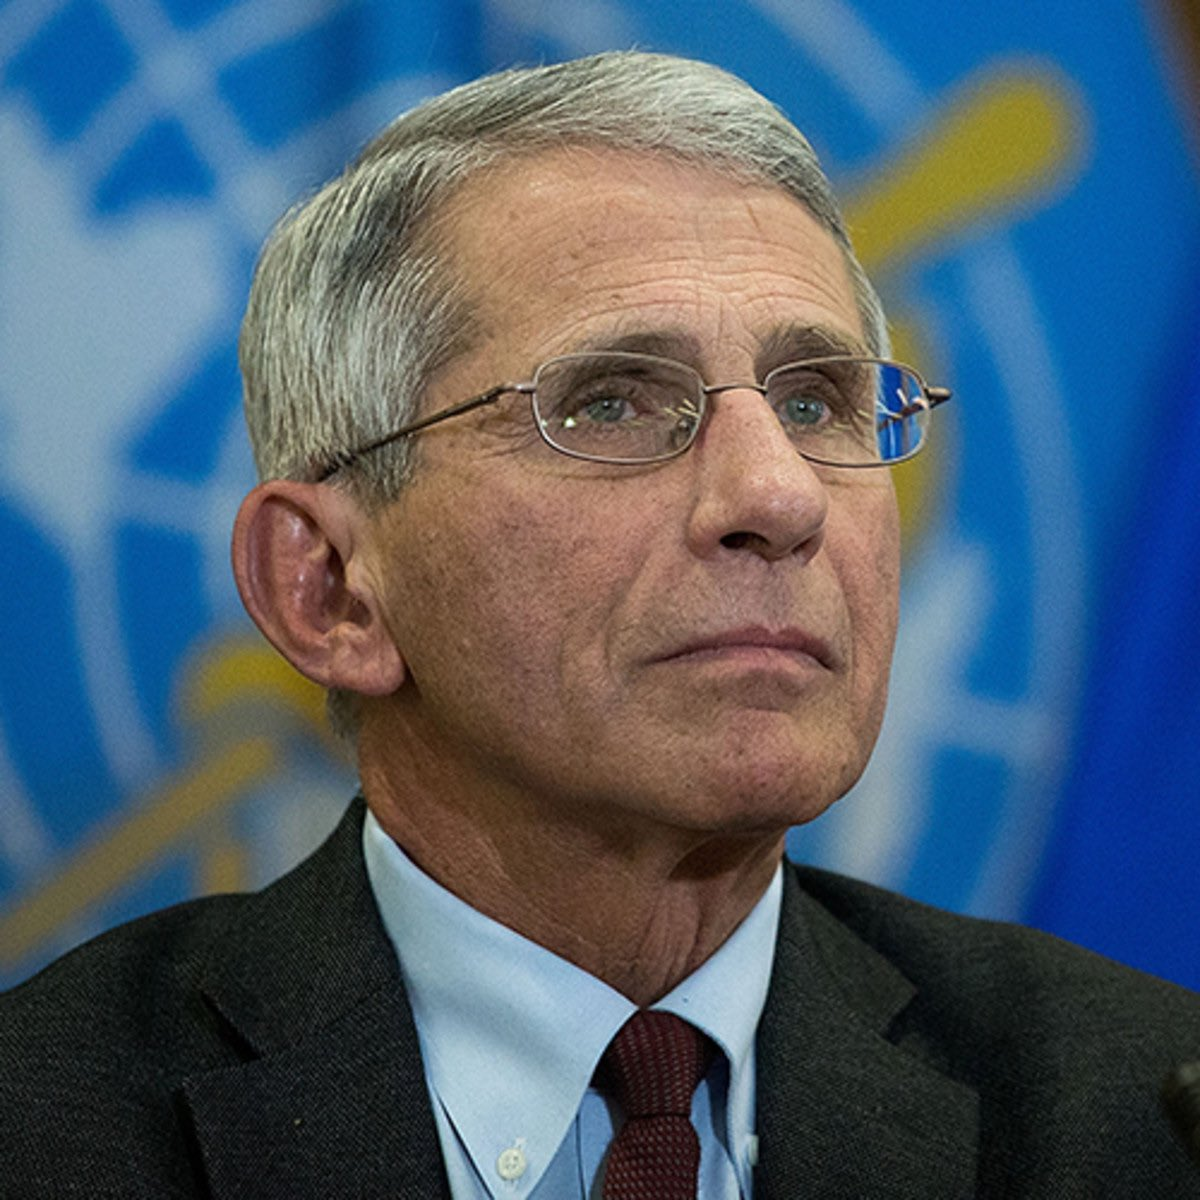 We salute @WhiteHouse decision communicated by Dr. Tony Fauci to remain a @WHO member-state and collaboratively work to defeat #COVID19 and regain momentum towards achieving #SDG3, which includes ending #HIV and #TB epidemics by 2030.